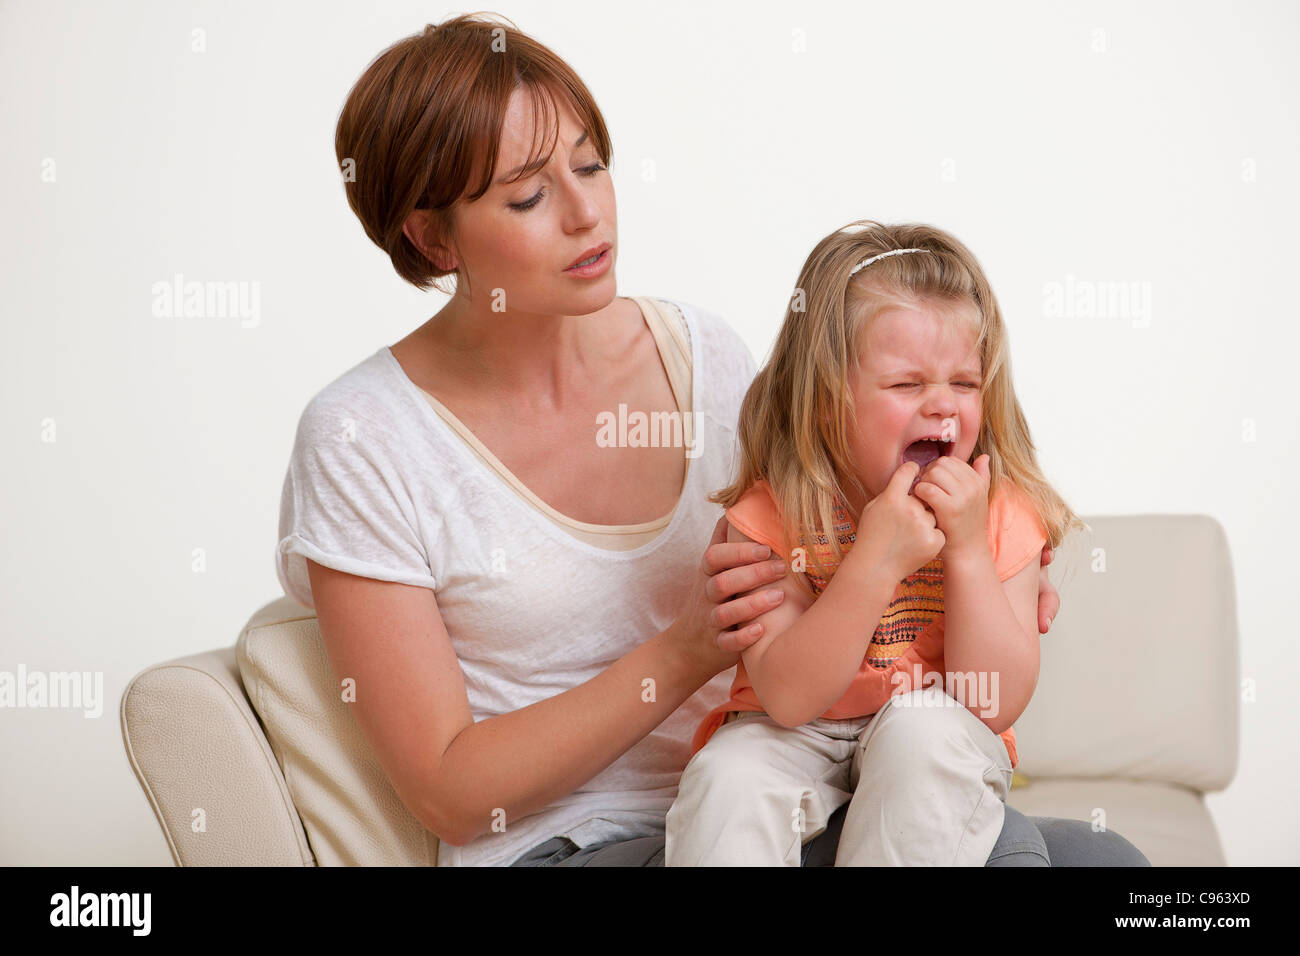 Toddler crying on her mother's lap. - Stock Image